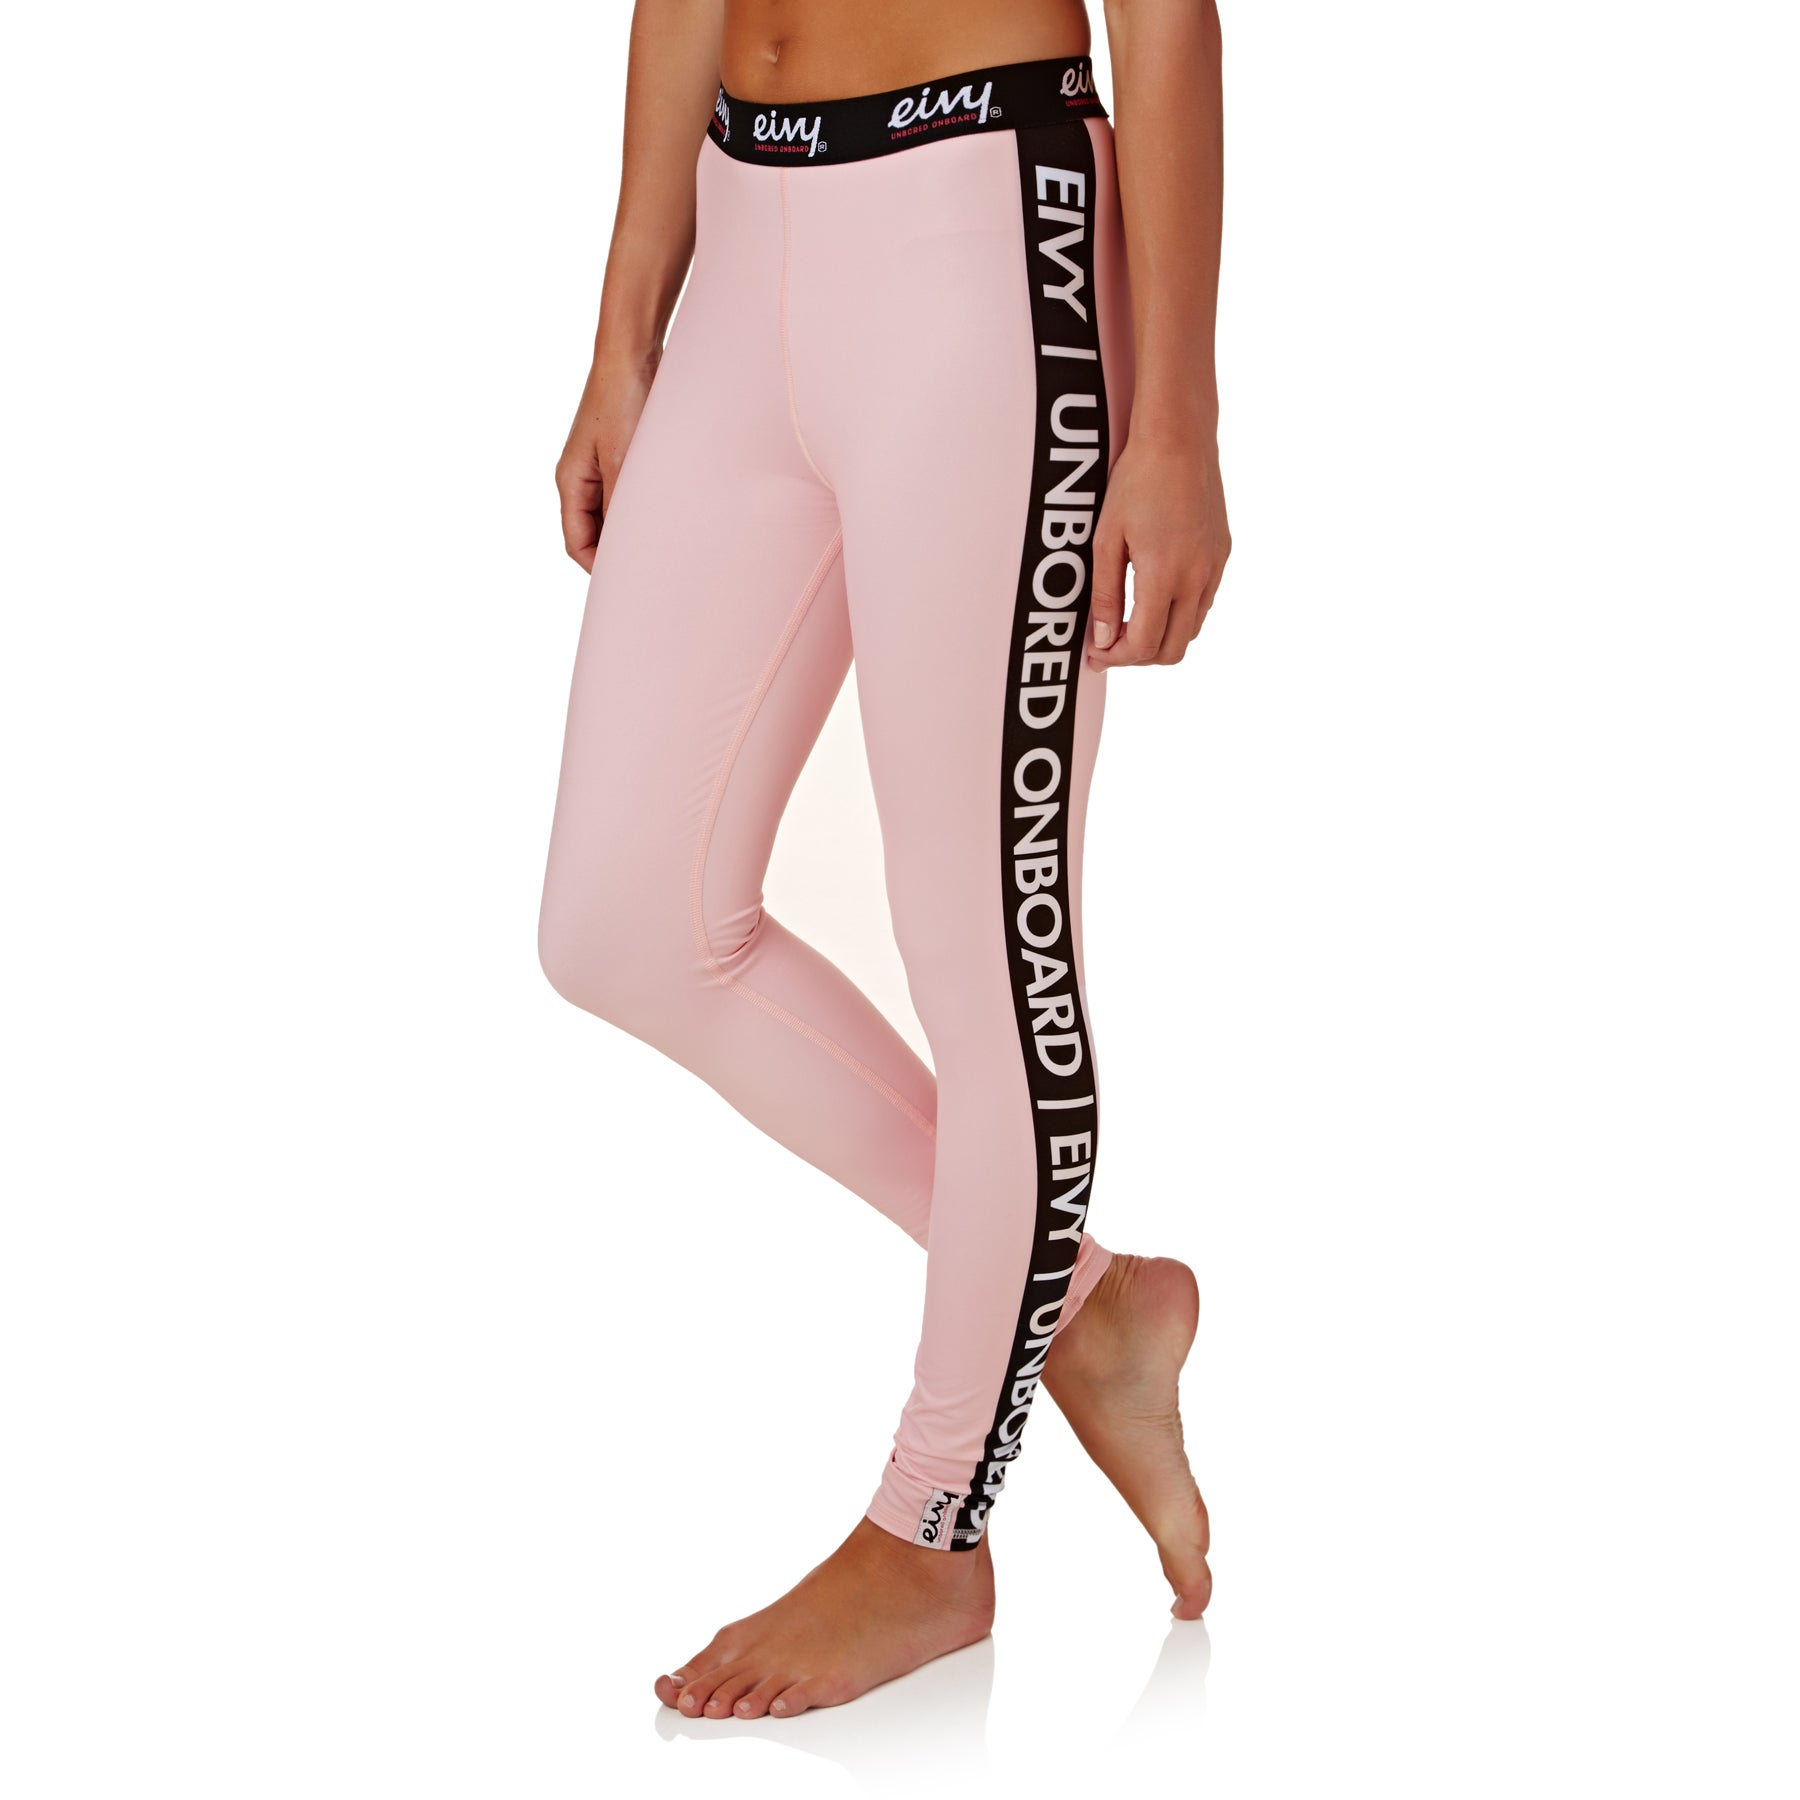 Eivy Icecold Womens Base Layer Leggings - Dusty Pink